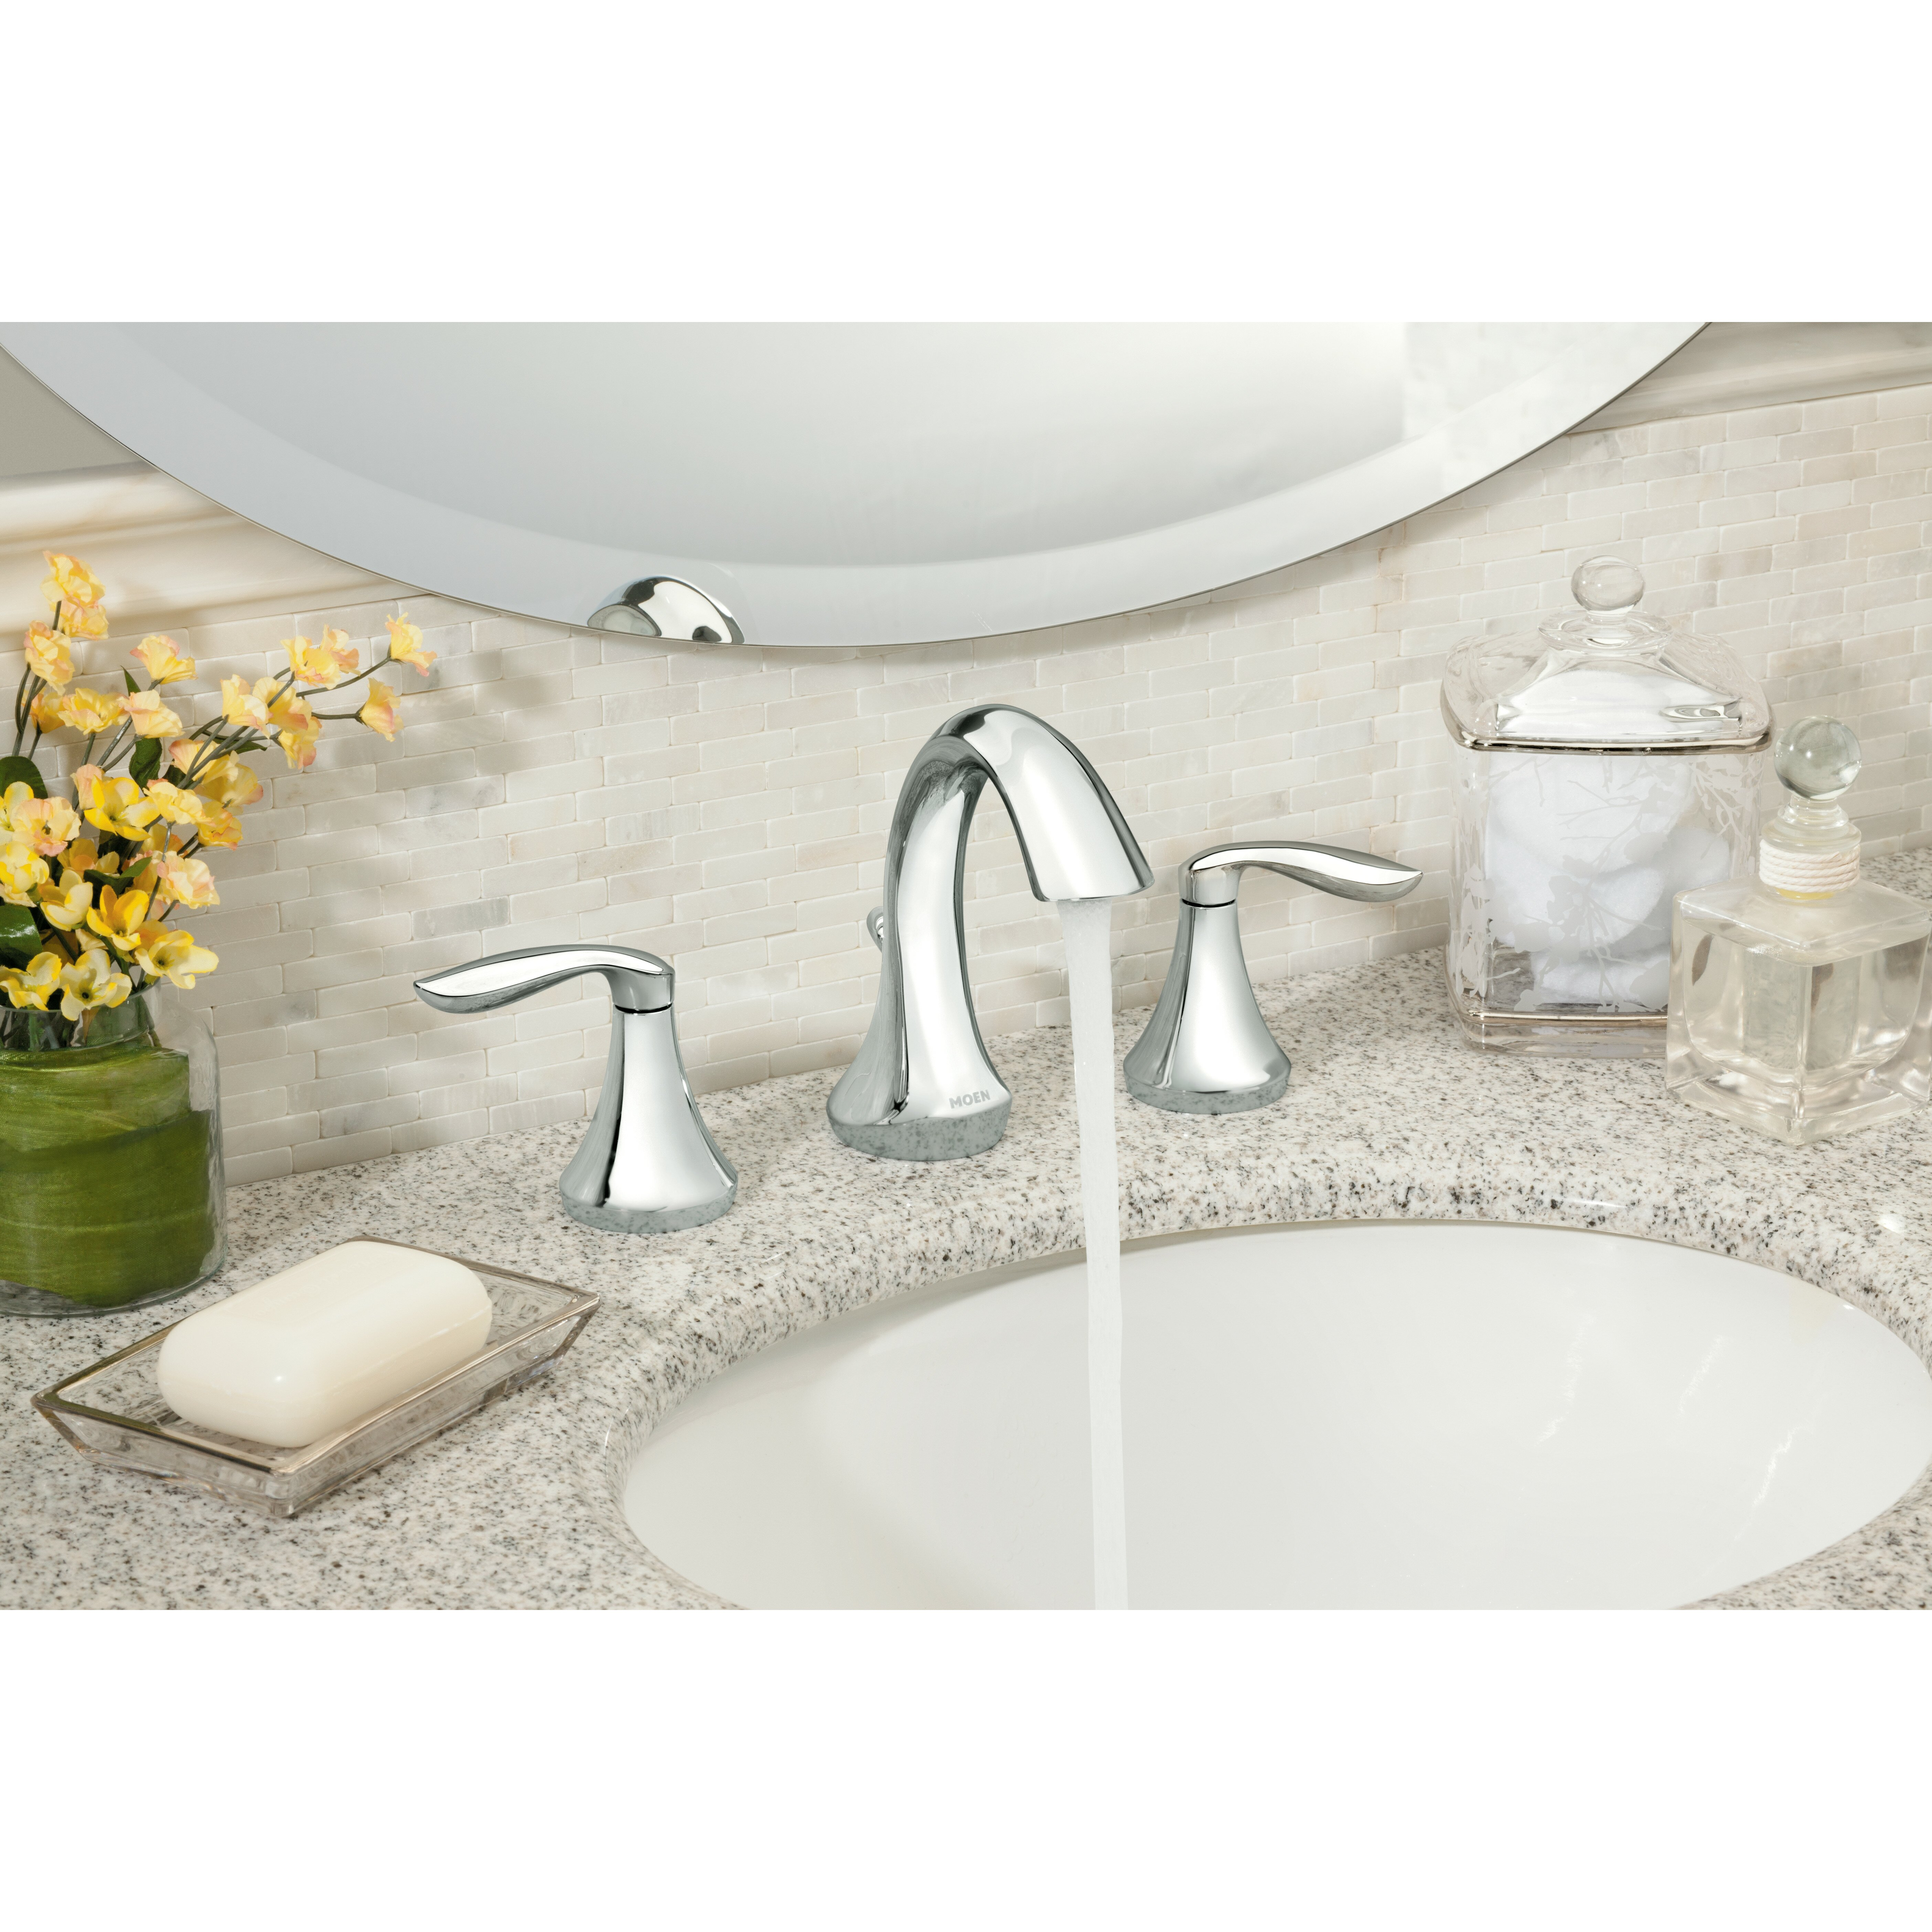 Moen eva double handle widespread bathroom faucet reviews wayfair for How to clean pitted chrome bathroom fixtures